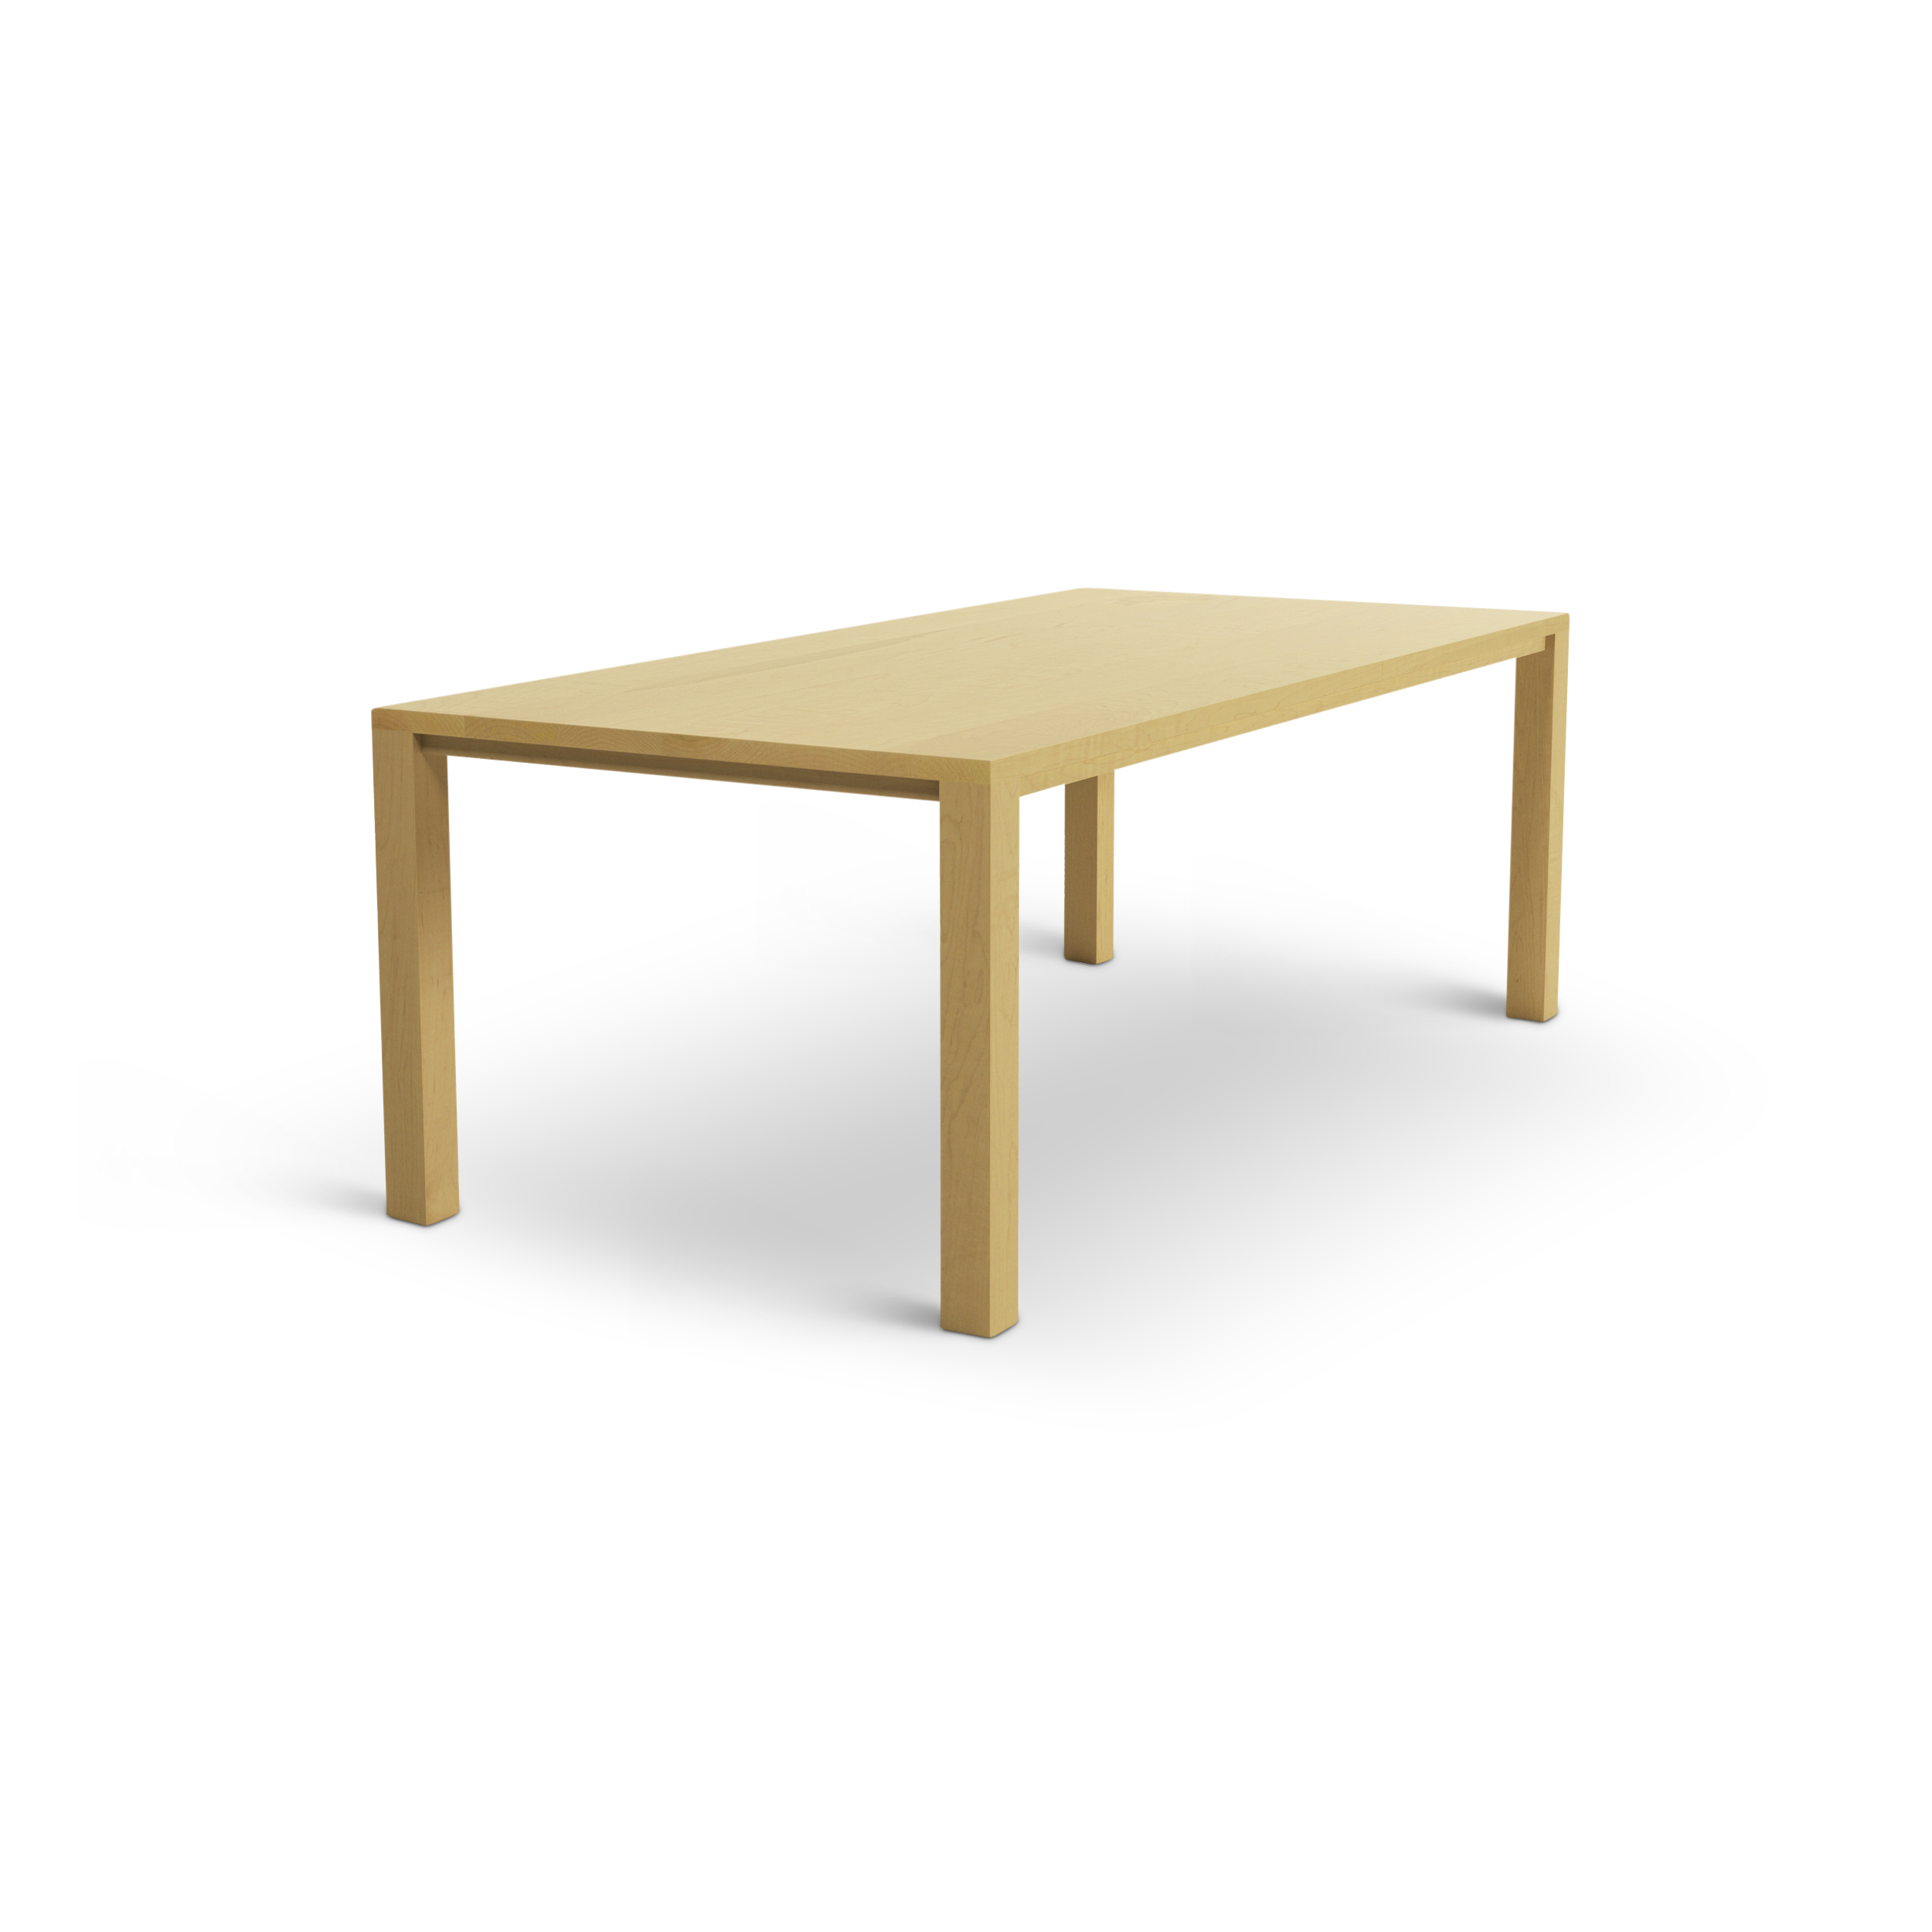 Maple Modern Table Made In The Midwest With Square Legs